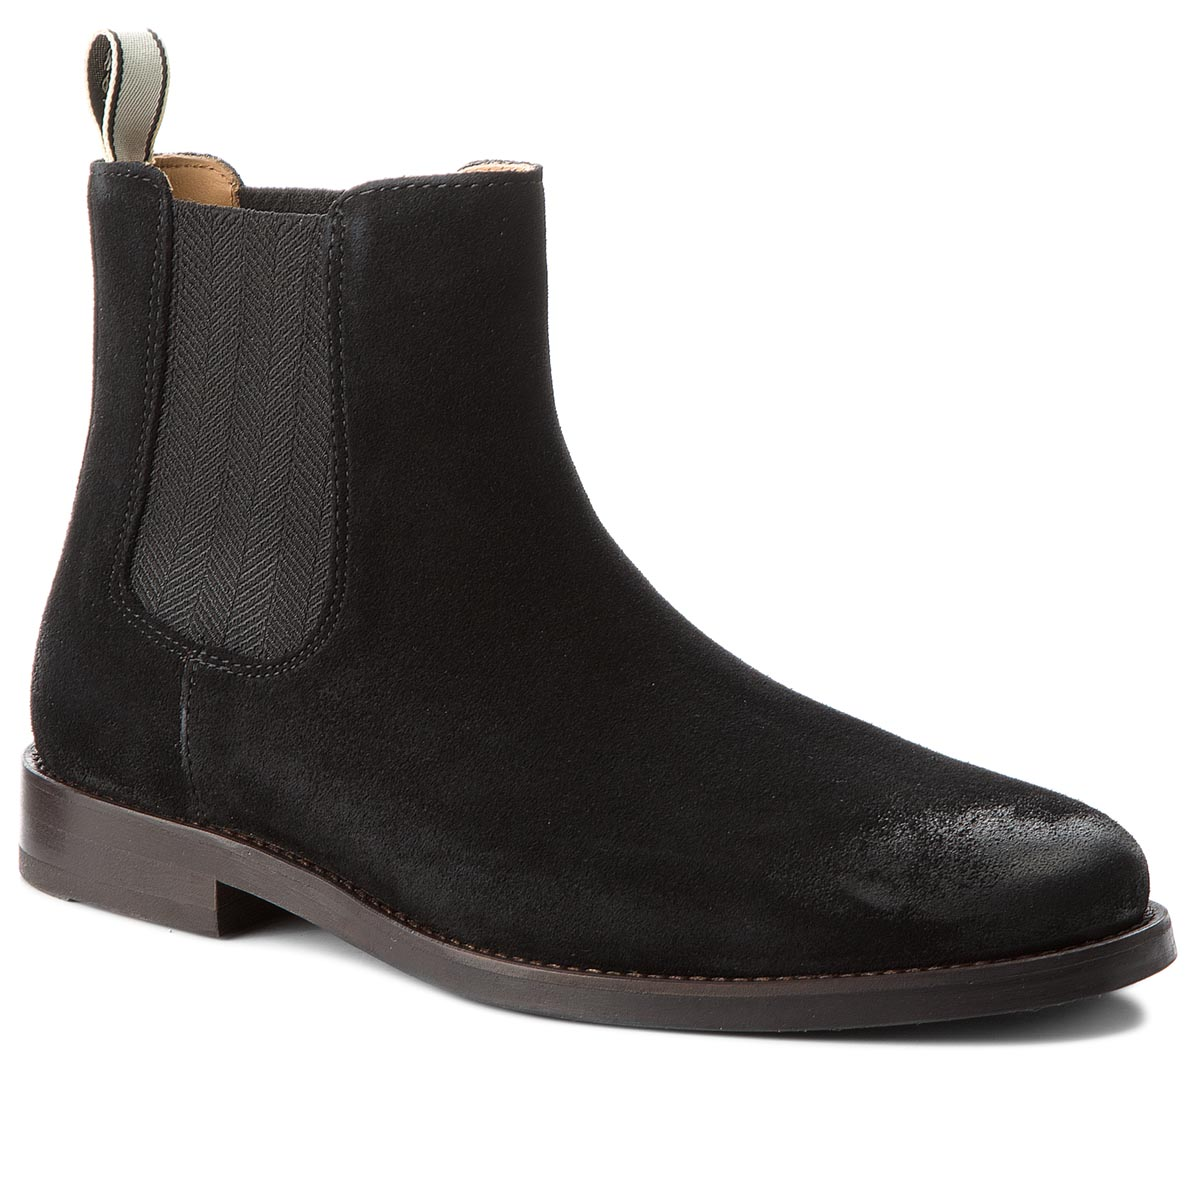 9f70a98f3 Ankle Boots GANT - Max 17653892 Tabacco Brown G42 - Chelsea boots ...